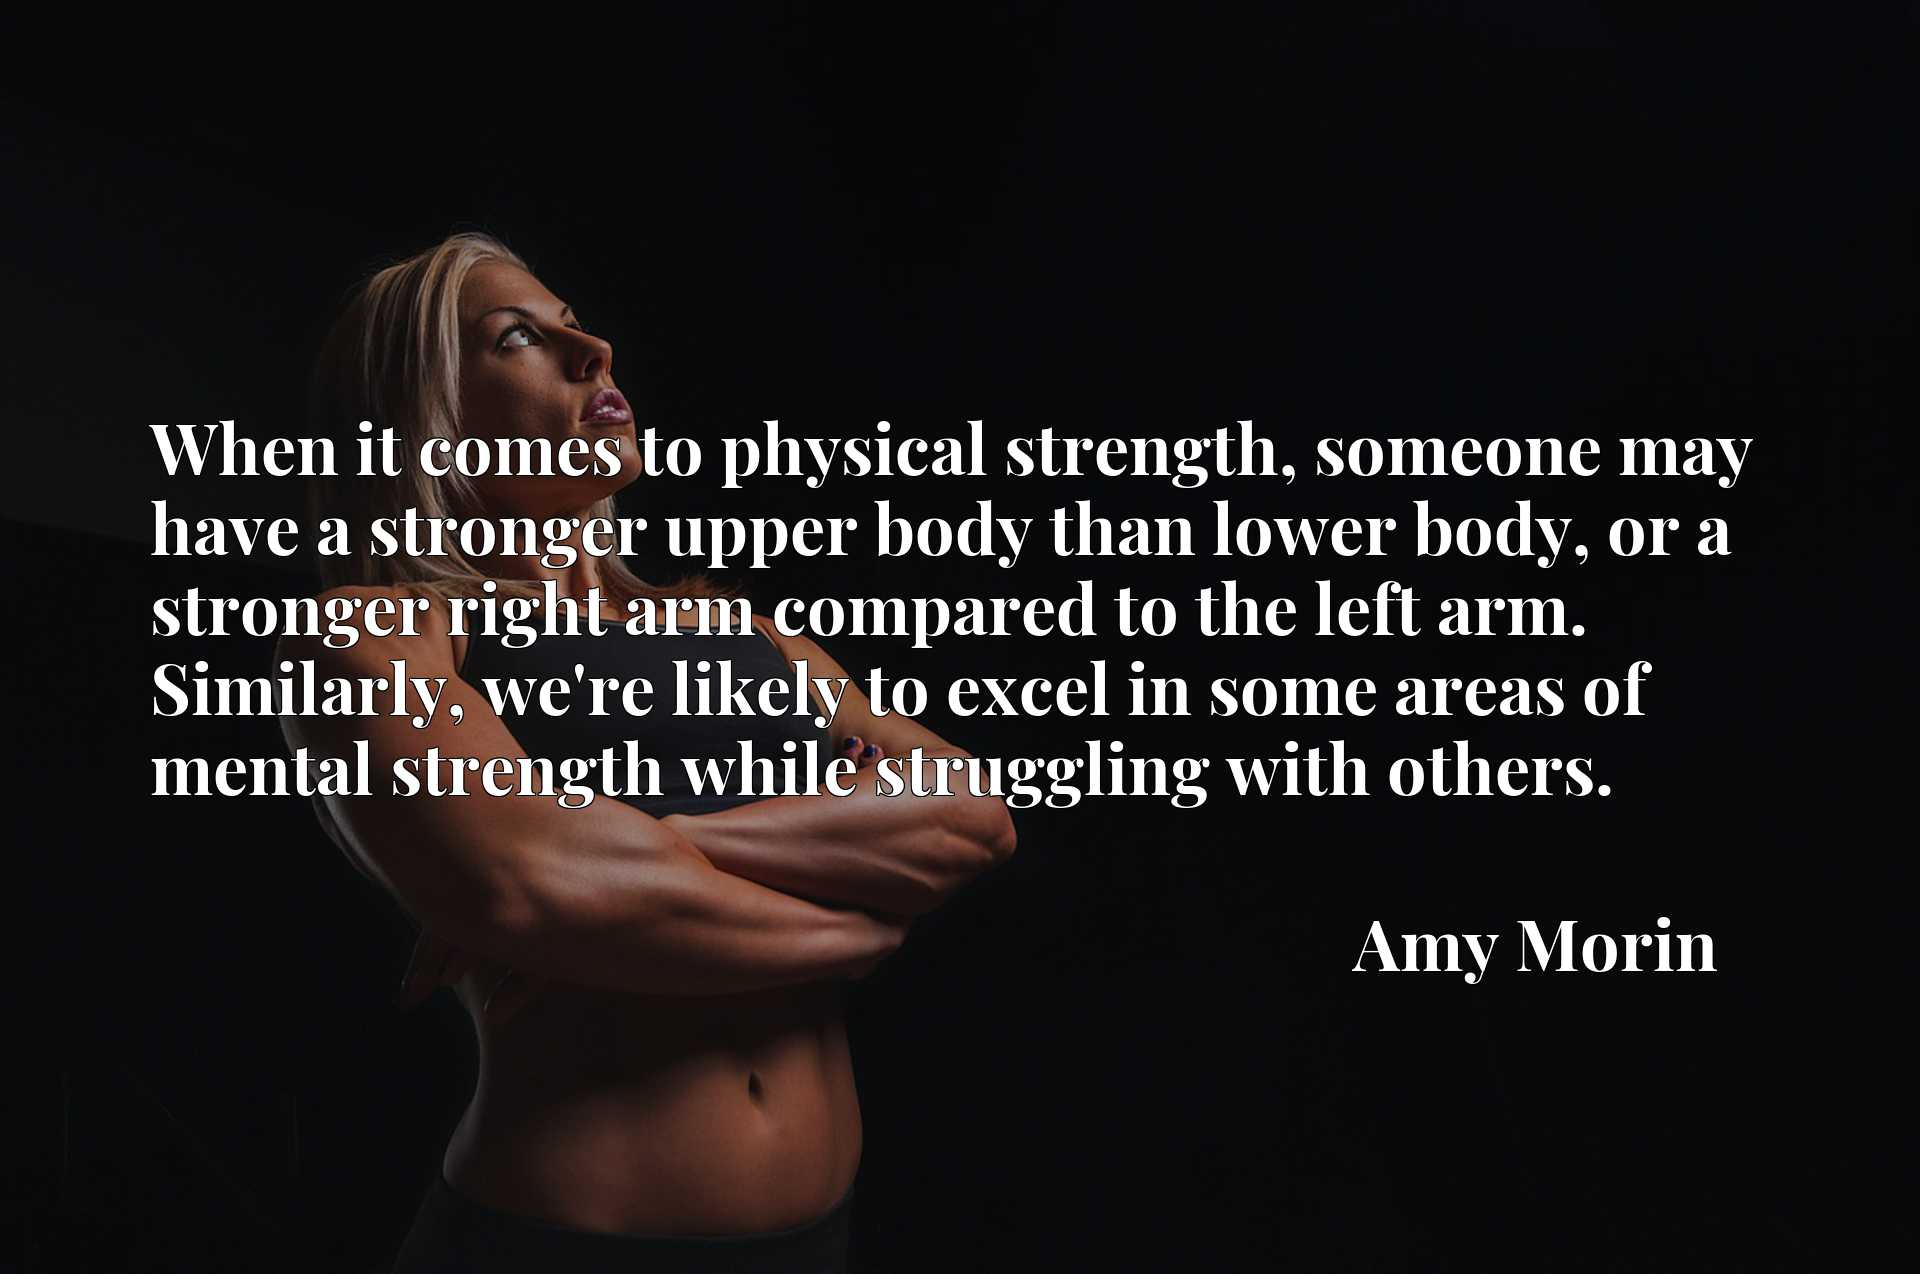 When it comes to physical strength, someone may have a stronger upper body than lower body, or a stronger right arm compared to the left arm. Similarly, we're likely to excel in some areas of mental strength while struggling with others.